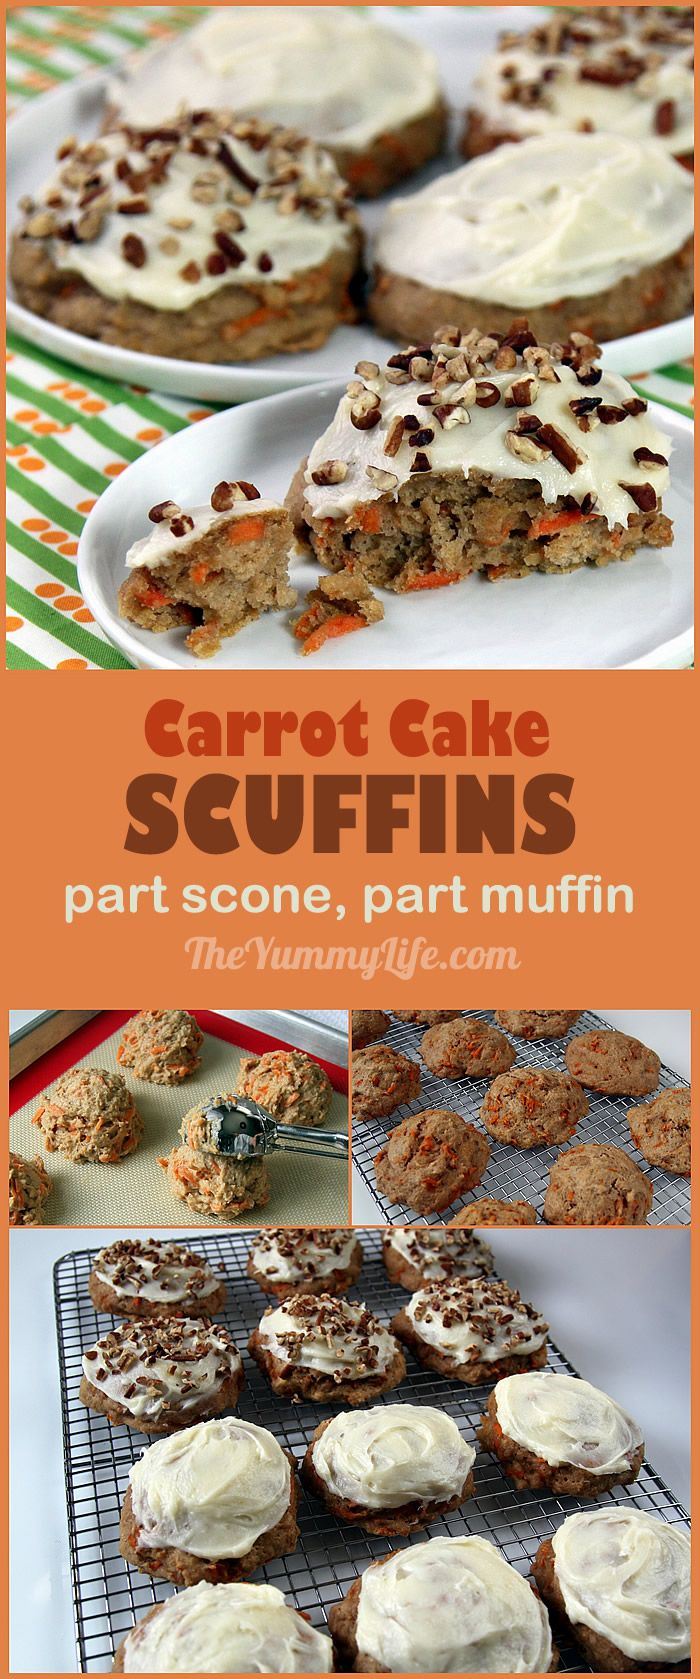 Whole Grain, Carrot Cake Scuffins are a cross between a scone and a muffin. Sweetened with maple syrup and loaded with fresh carrots, the quick, whole grain, yogurt batter is dropped in mounds on a baking sheet and ready in 30 minutes, start to finish. From TheYummyLife.com